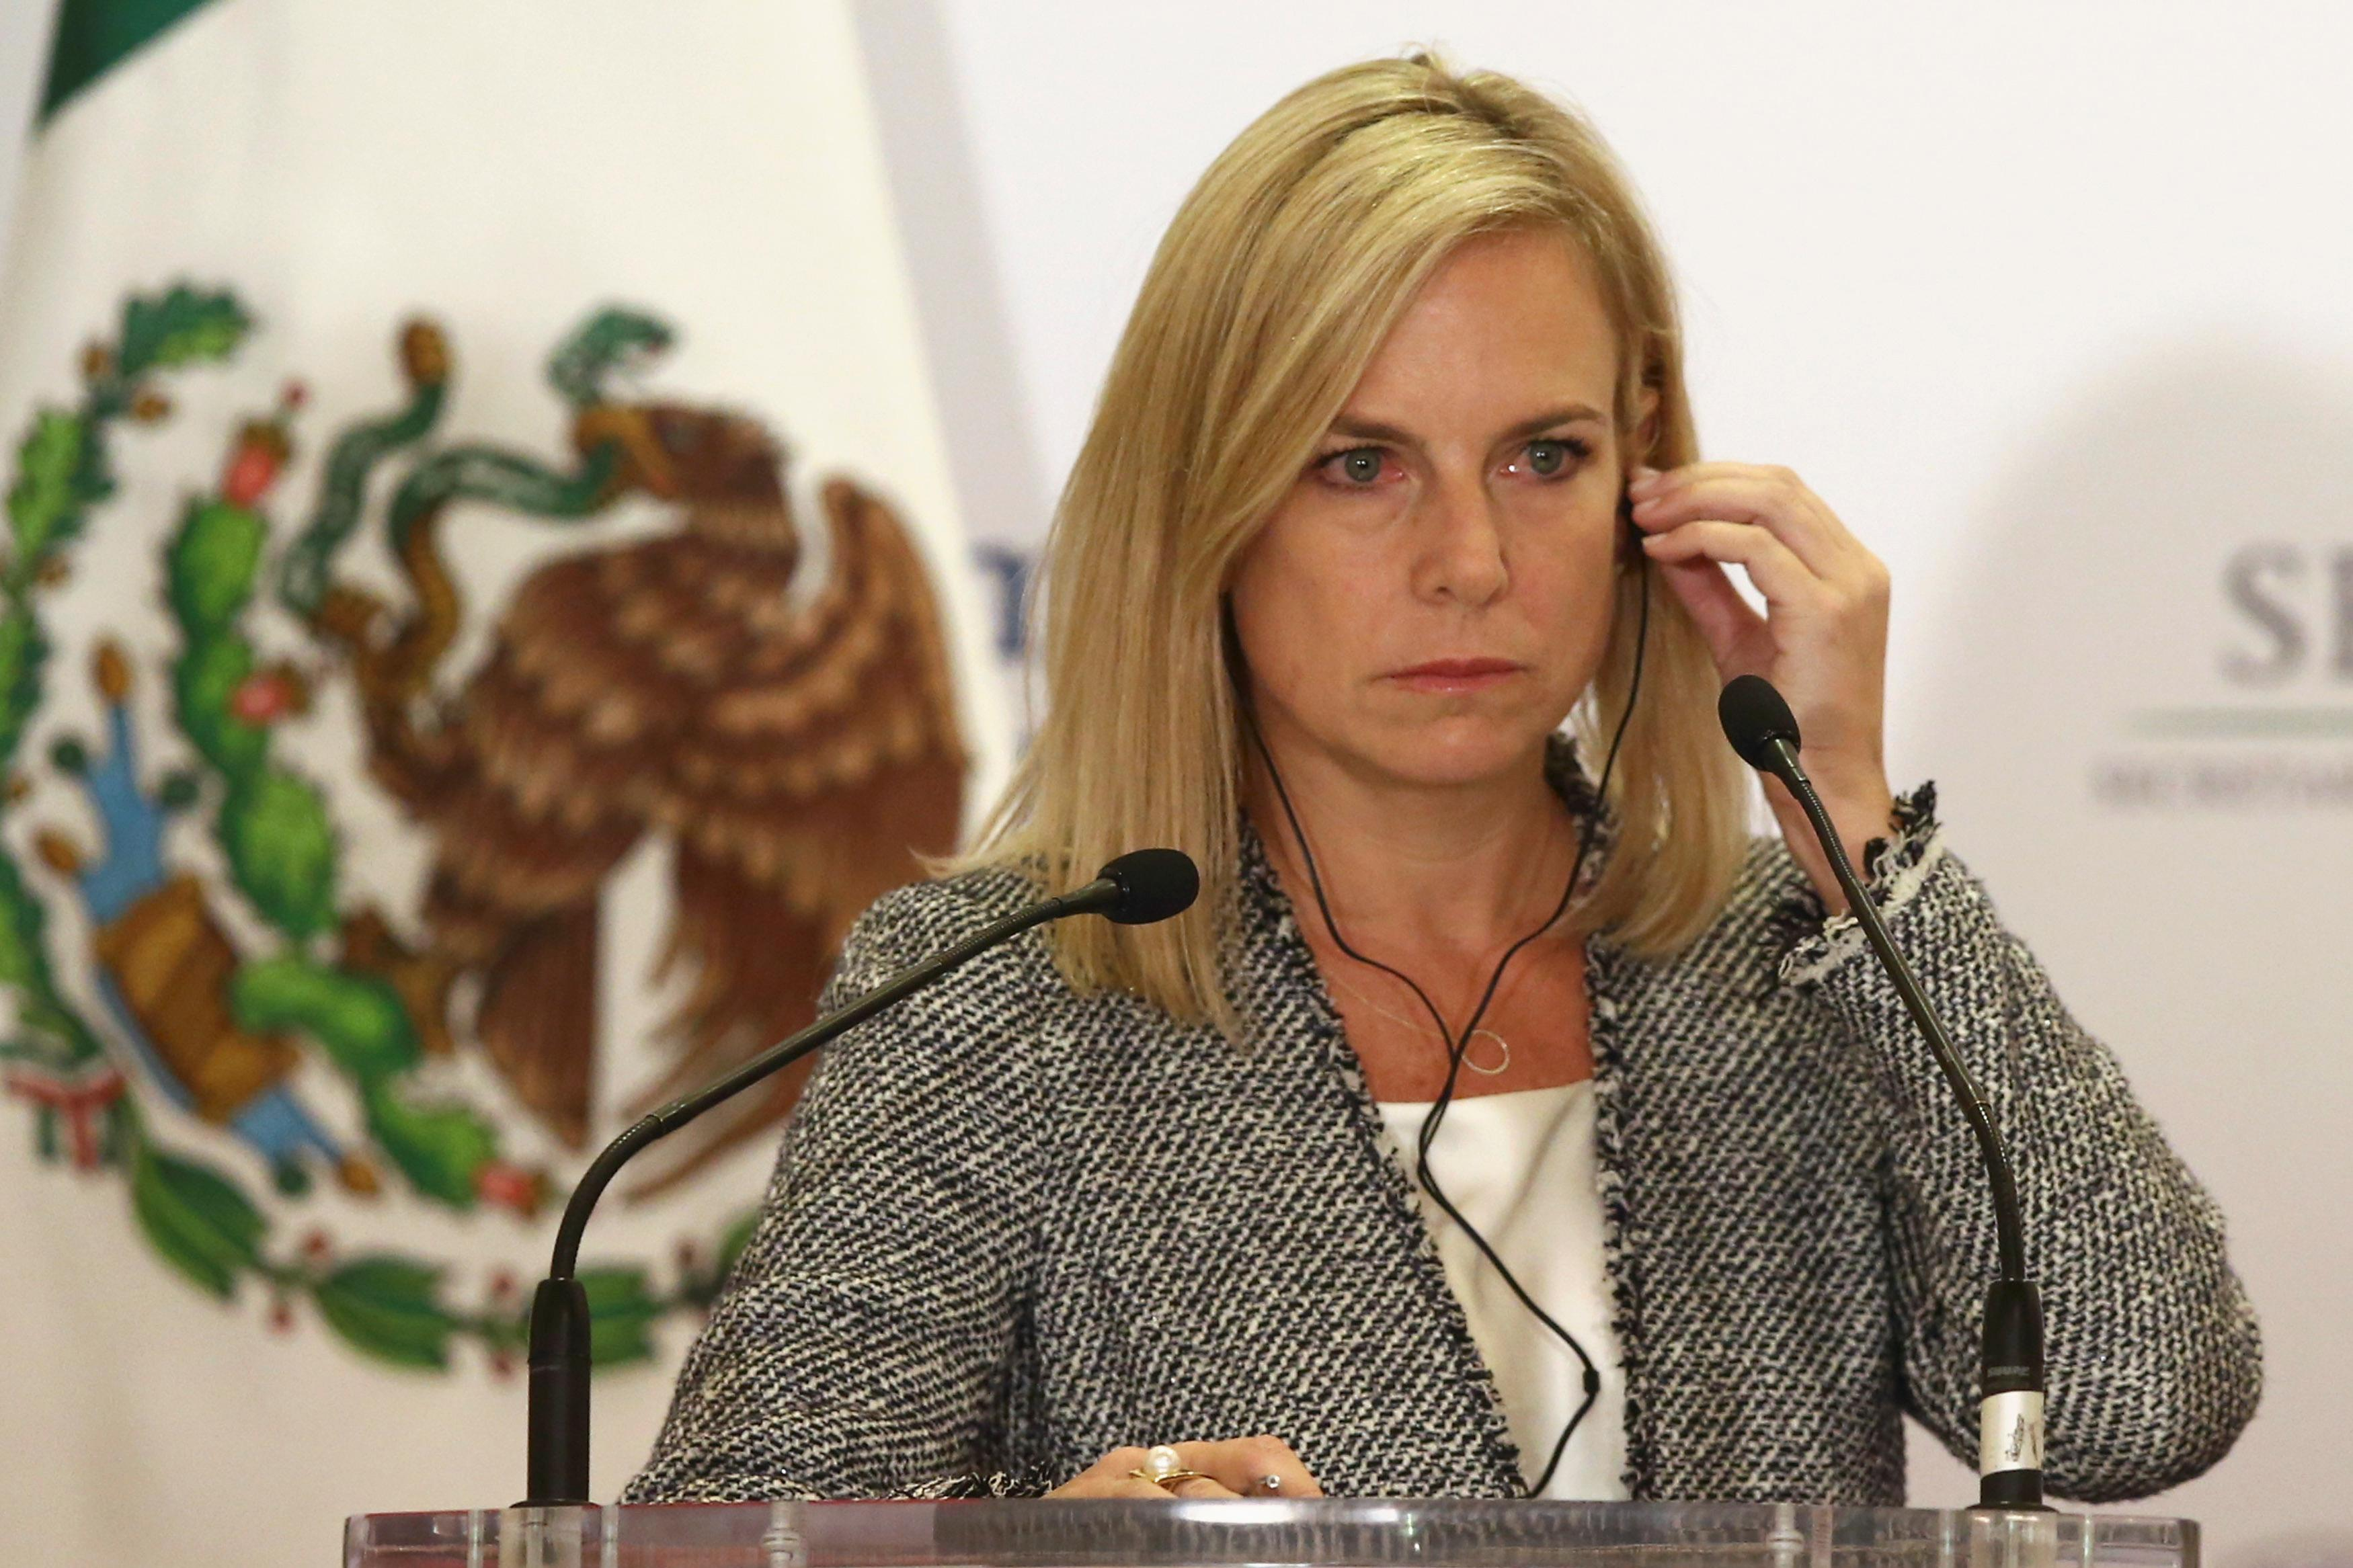 U.S. Homeland Security Secretary Kirstjen Nielsen adjusts her headset as she delivers a joint message with Mexico's Interior Minister Alfonso Navarrete Prida (not pictured) in Mexico City, Mexico March 26, 2018. Edgard Garrido